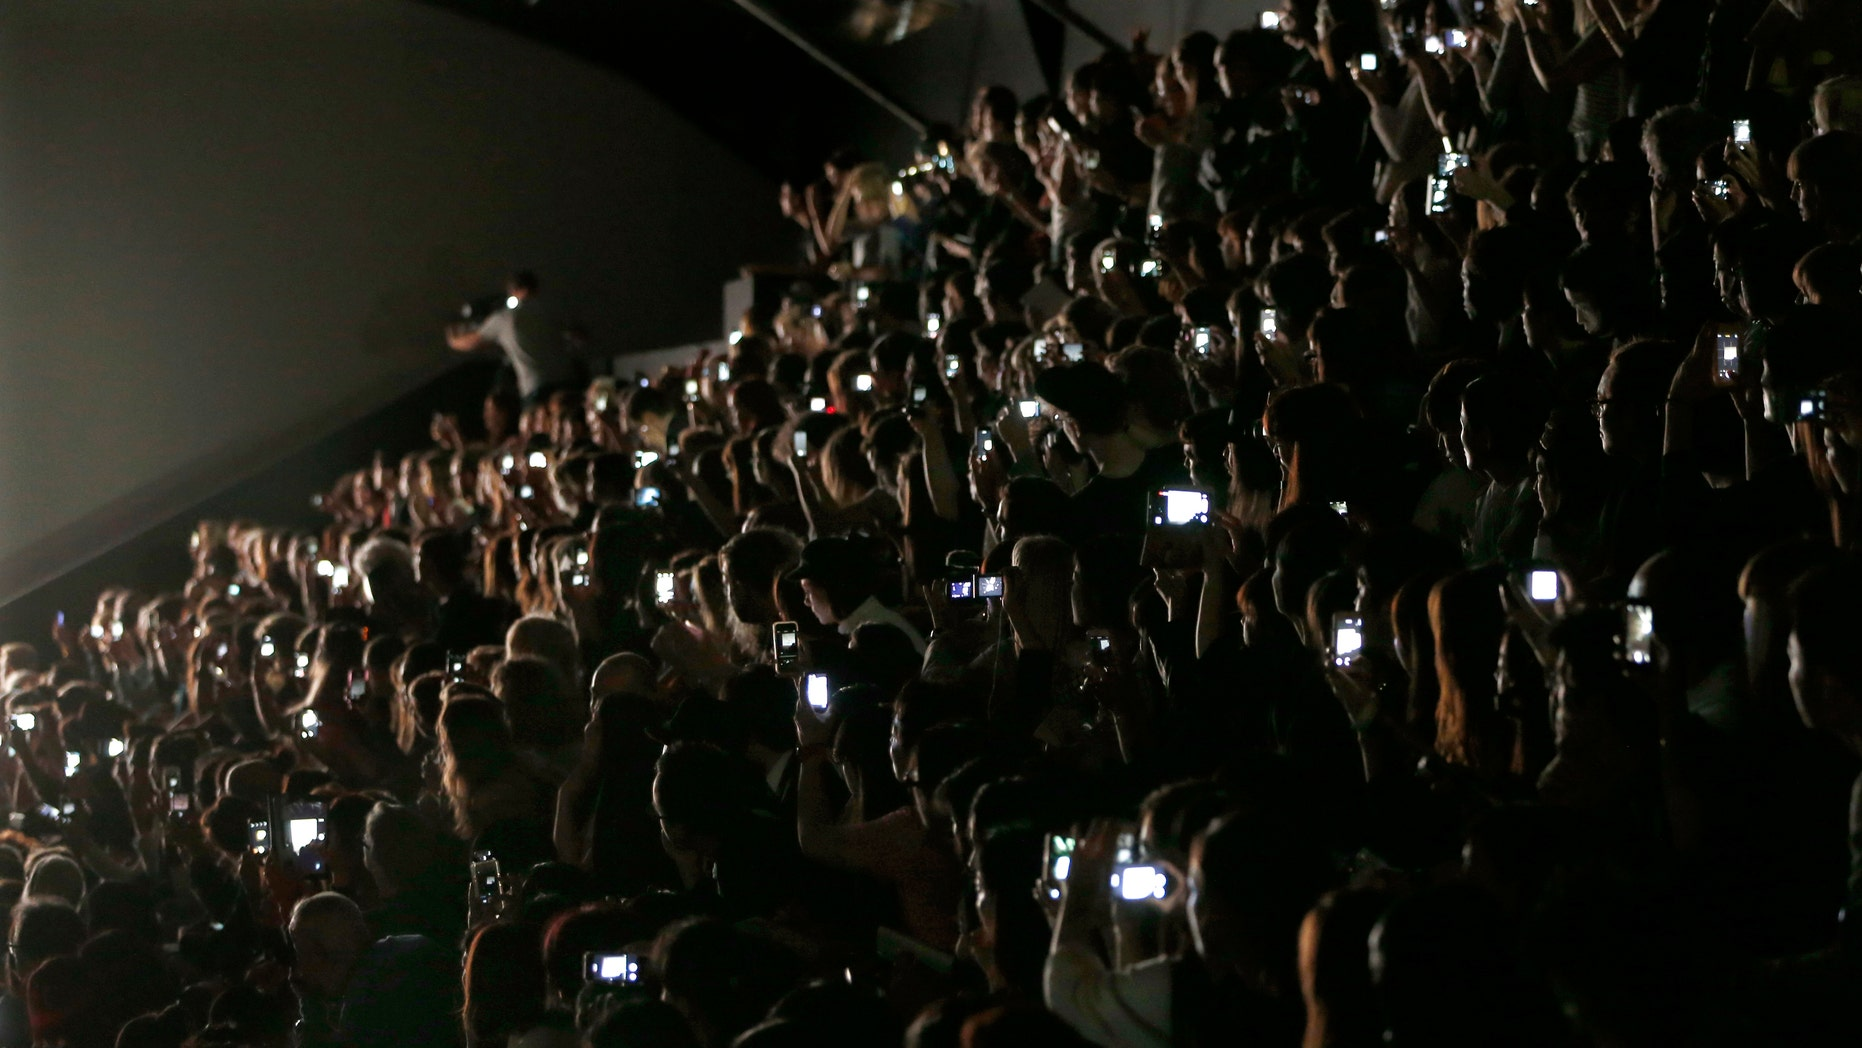 Guests and journalists take picture with their mobile phones during Japanese designer Yoshiyuki Miyamae Spring/Summer 2015 women's ready-to-wear collection show for fashion house Issey Miyake during Paris Fashion Week September 26, 2014.    REUTERS/Charles Platiau  (FRANCE - Tags: FASHION) - RTR47T3X